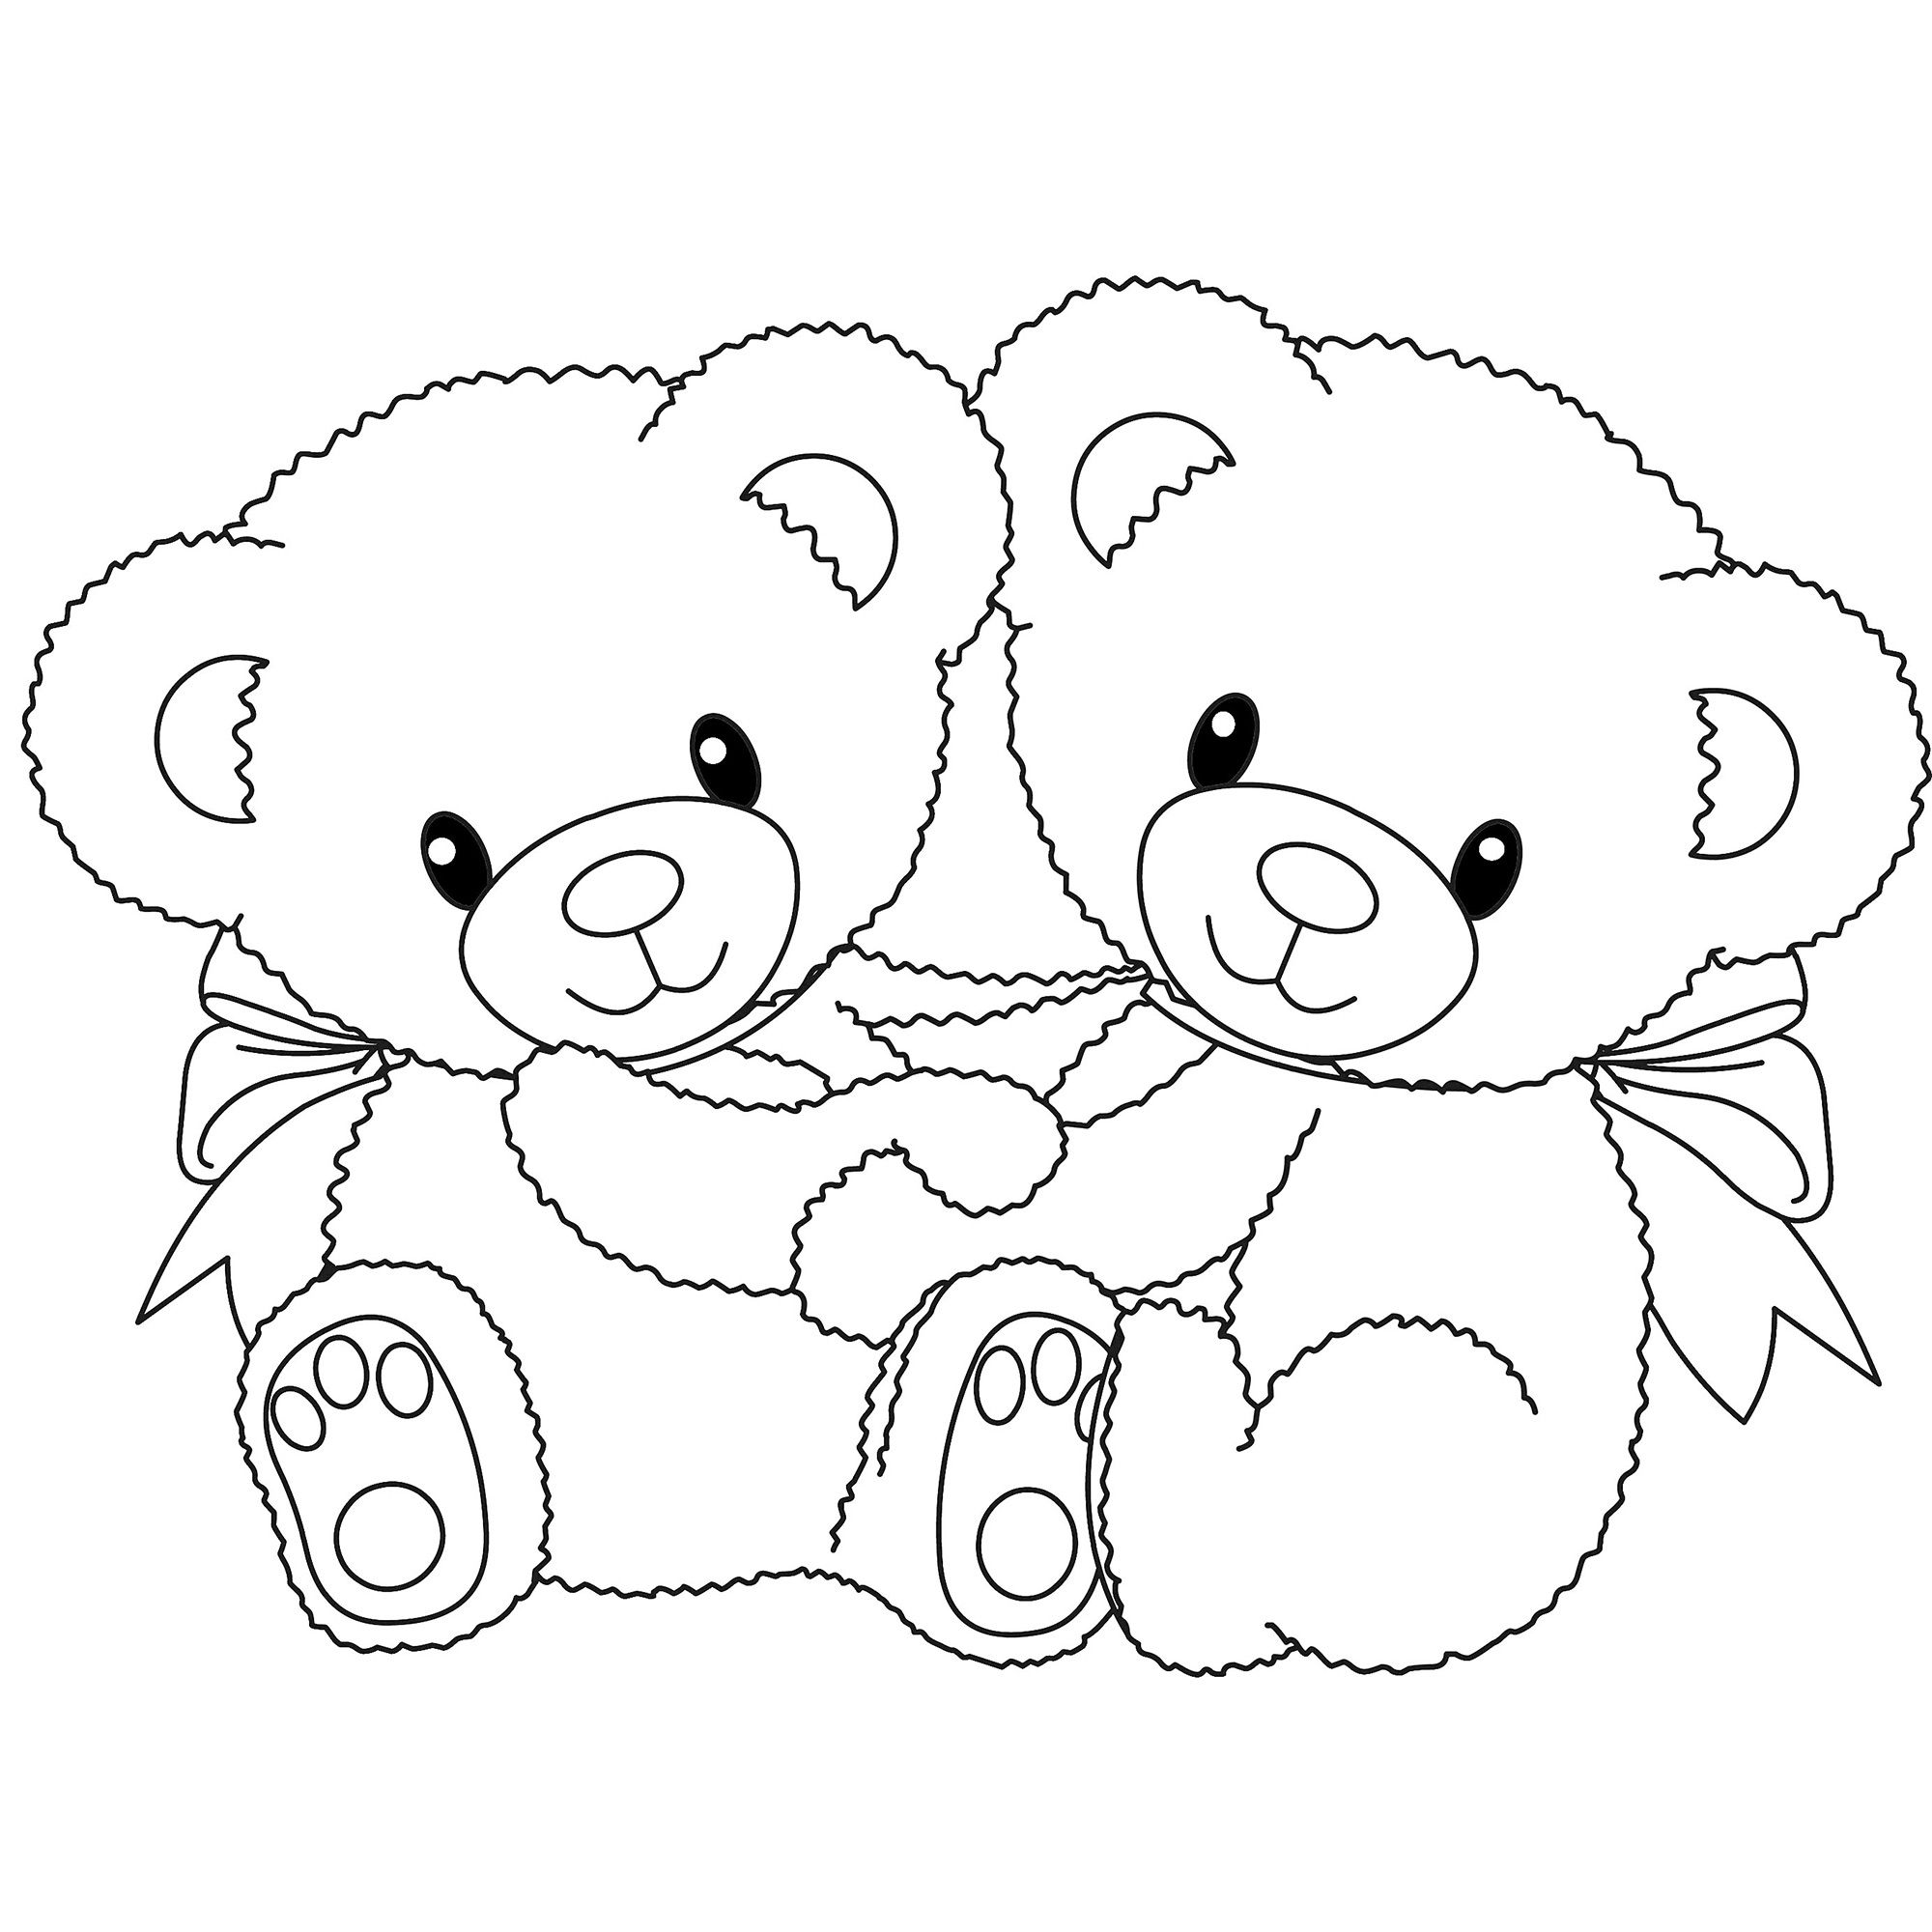 Teddy bear coloring pages free printable coloring pages  Teddy